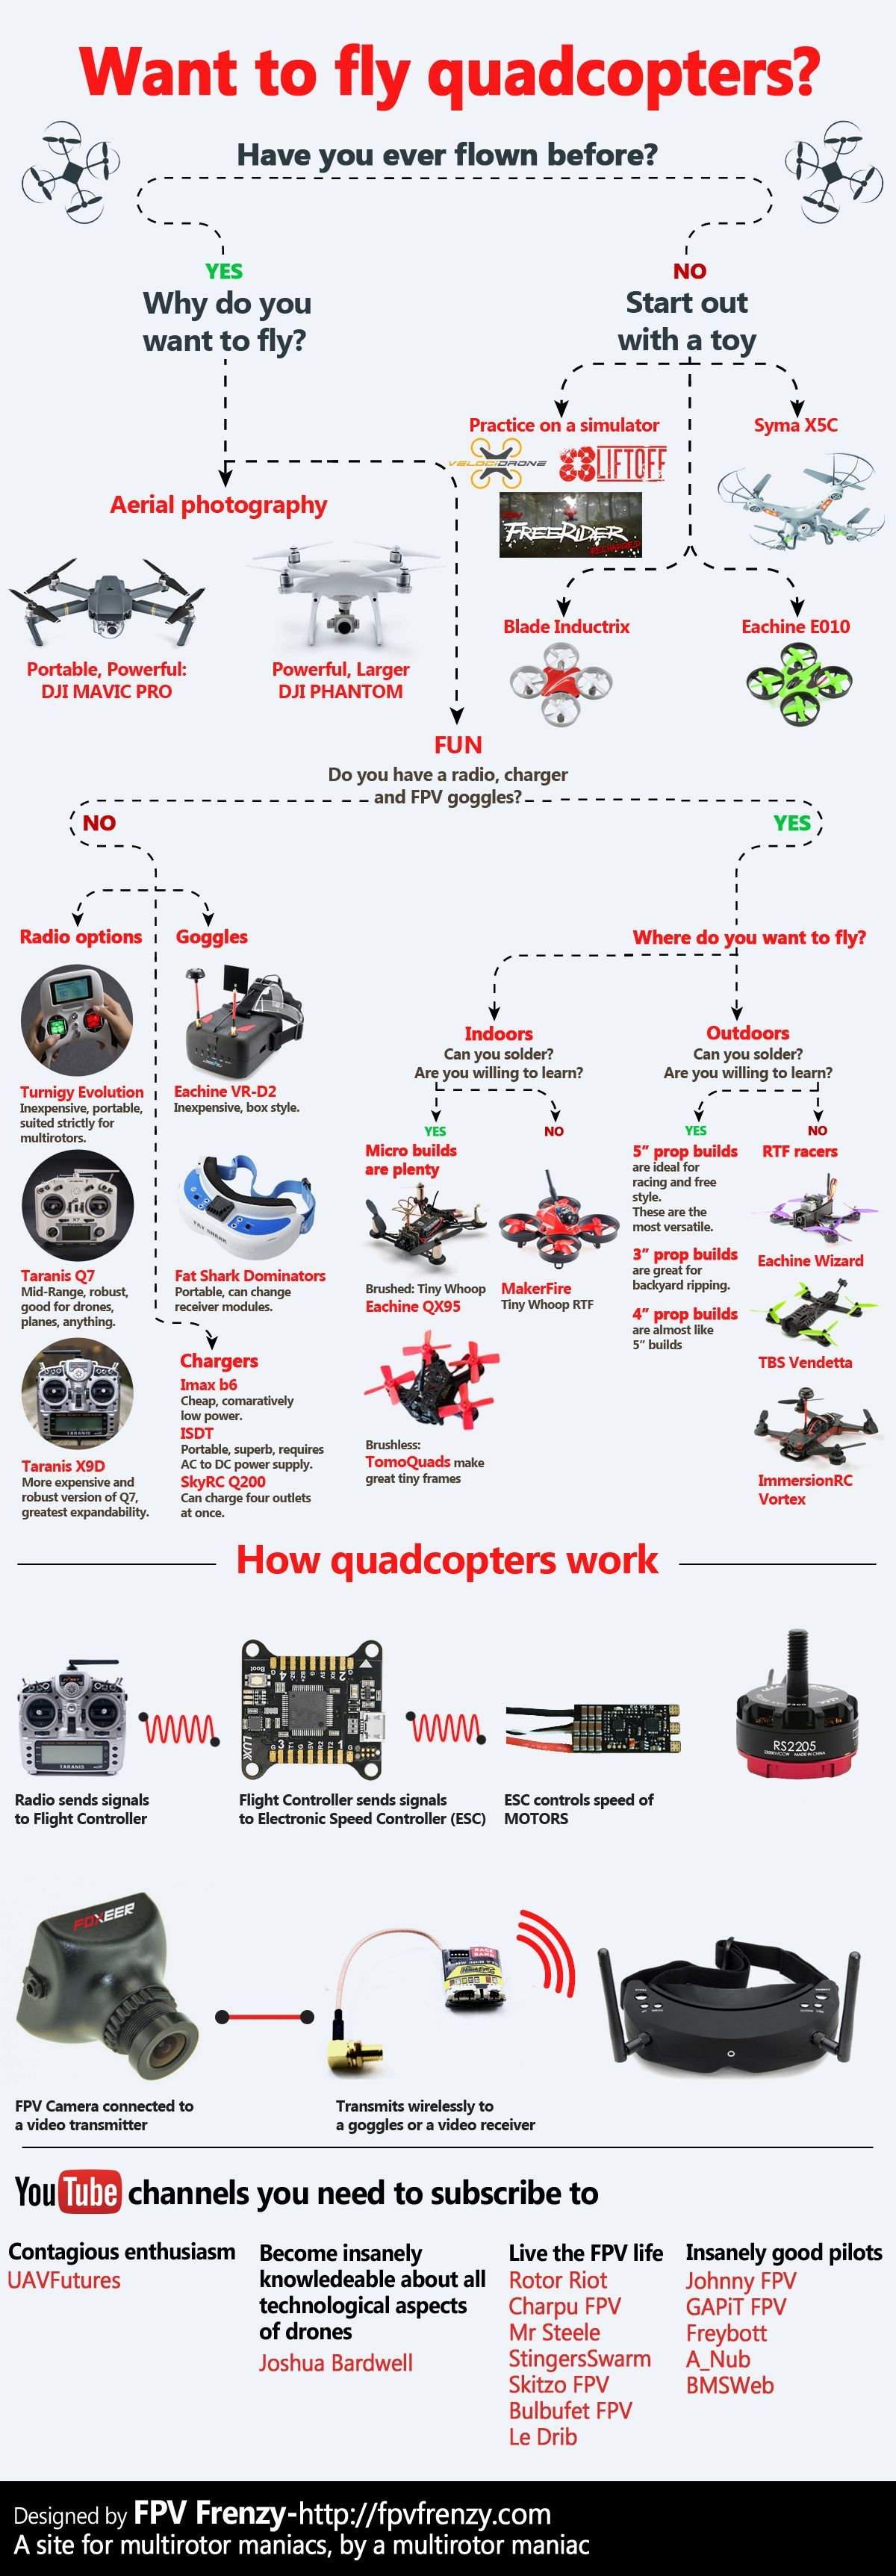 11 Best Quadcopter and Drone For Sale 2020 - My Drone Choice